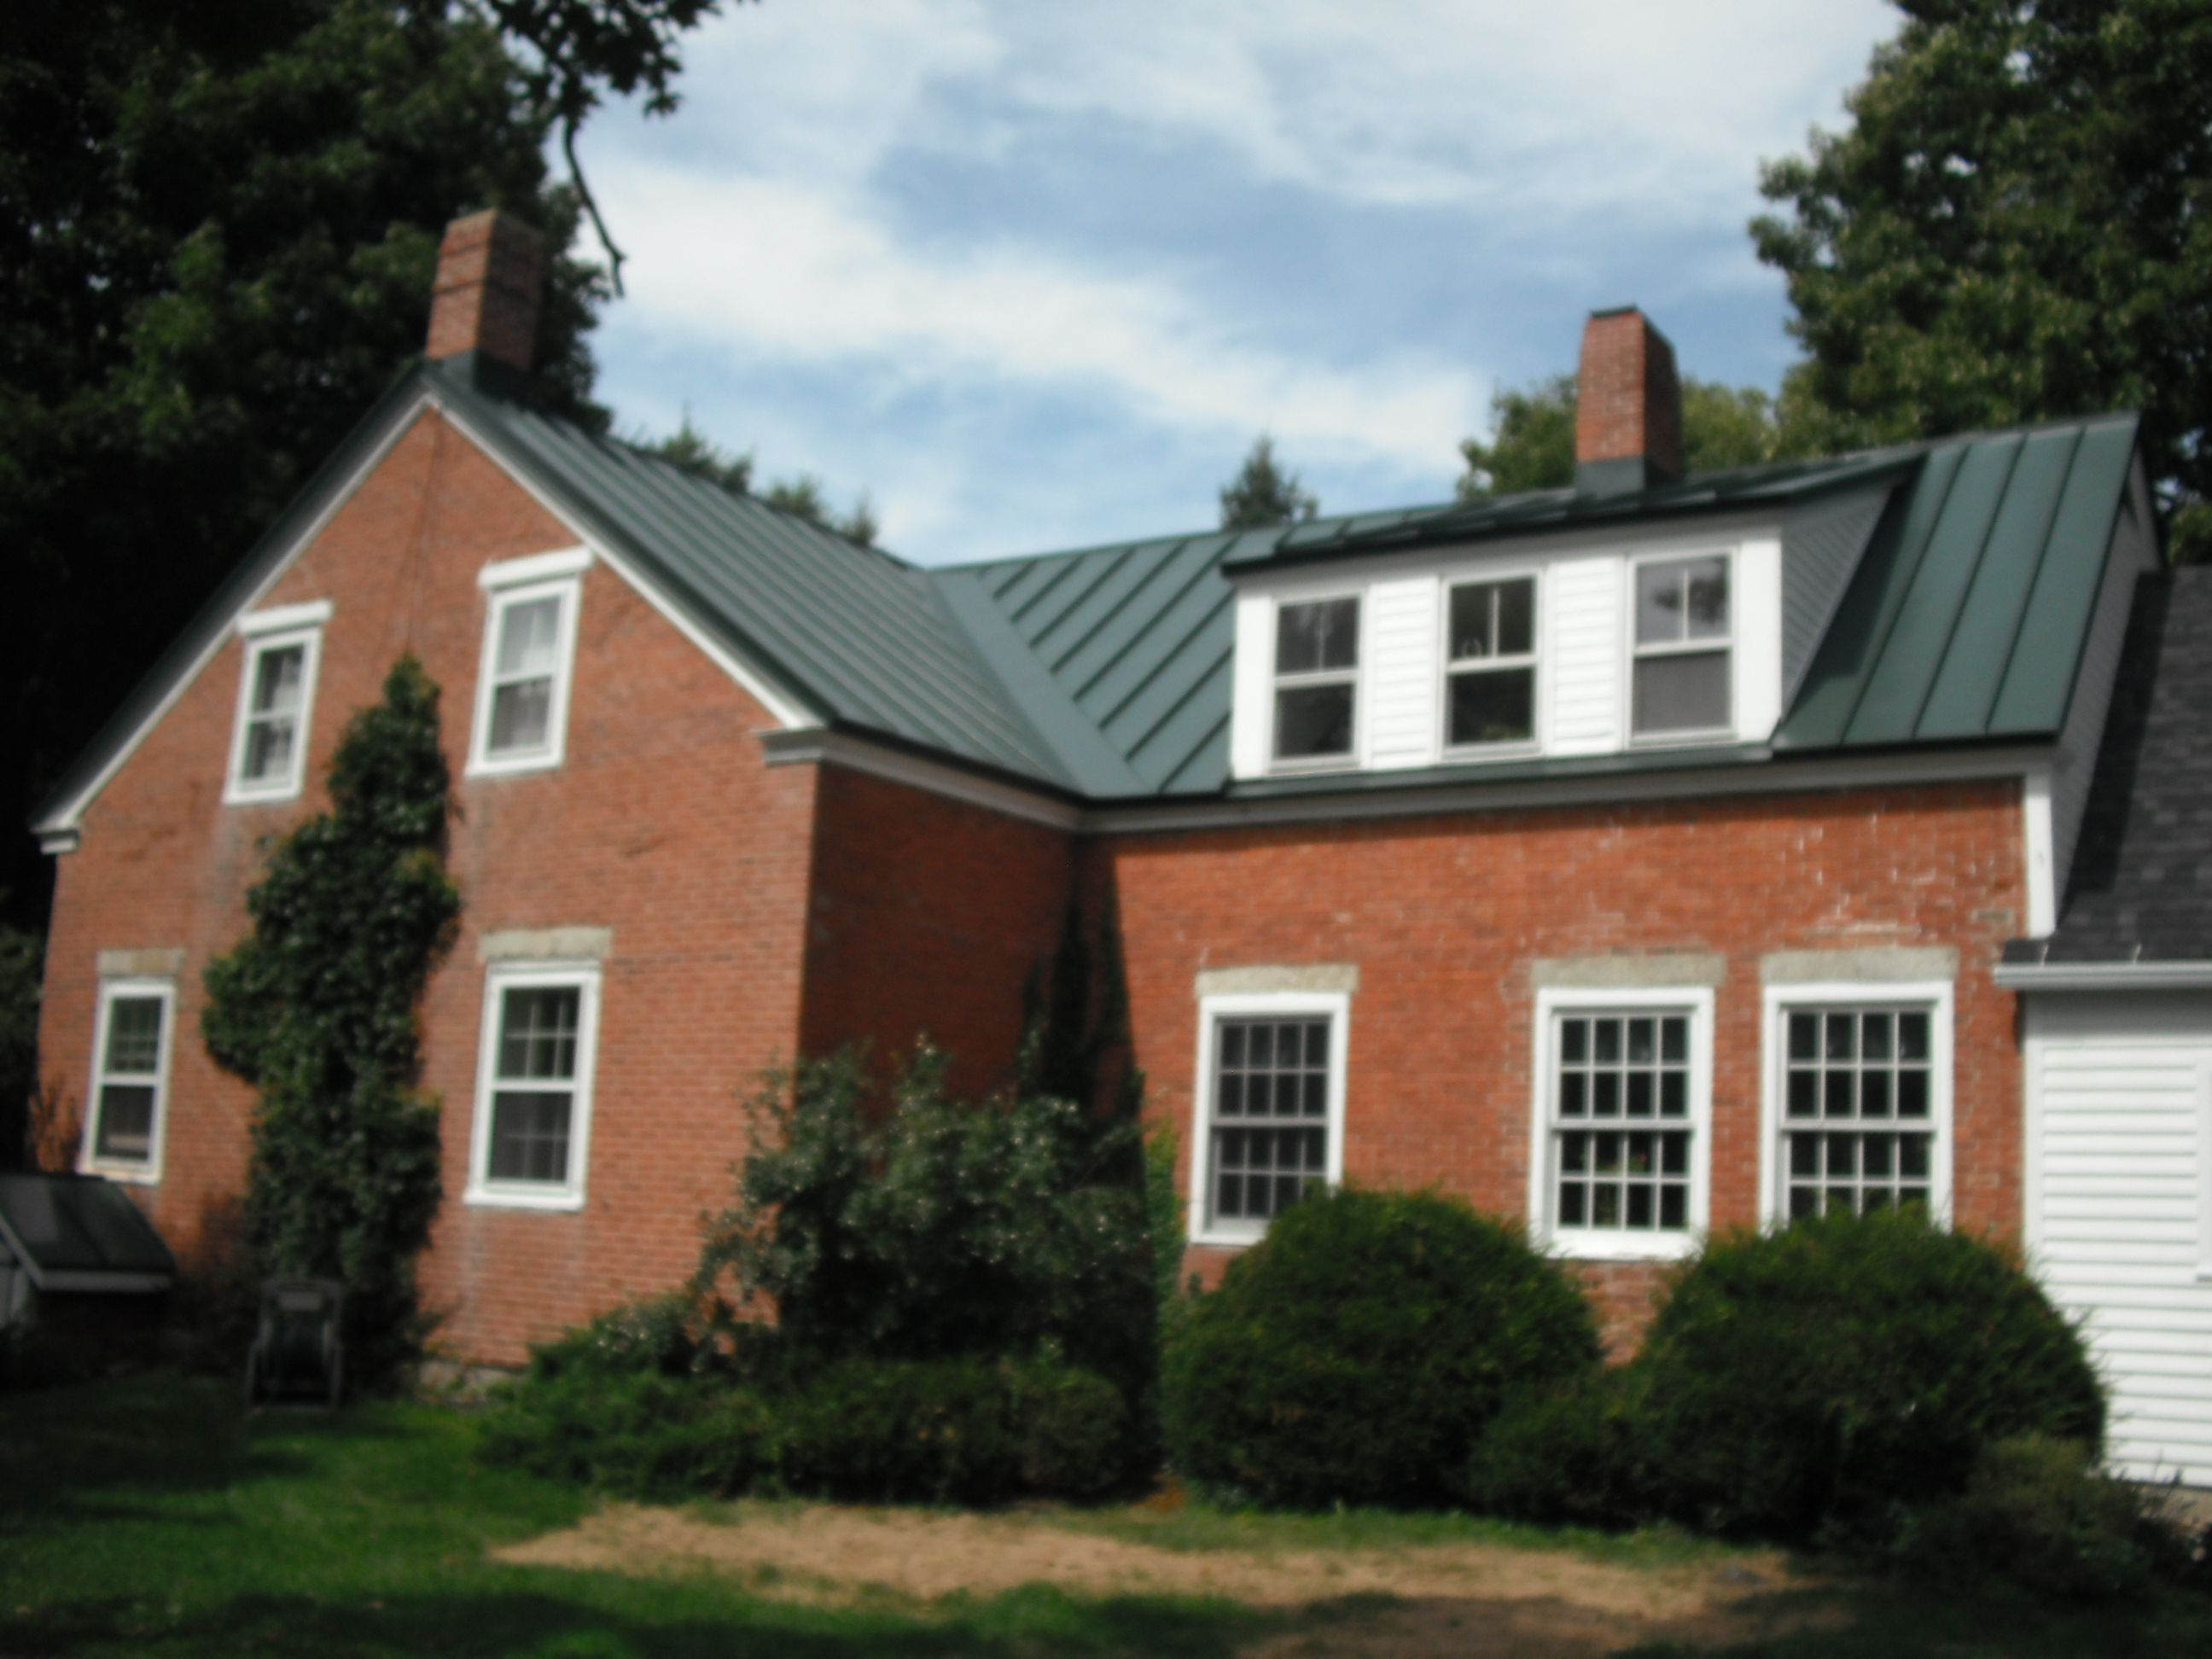 image result for red brick house with metal roof roof image result for red brick house with metal roof roof pinterest metal roof bricks and house